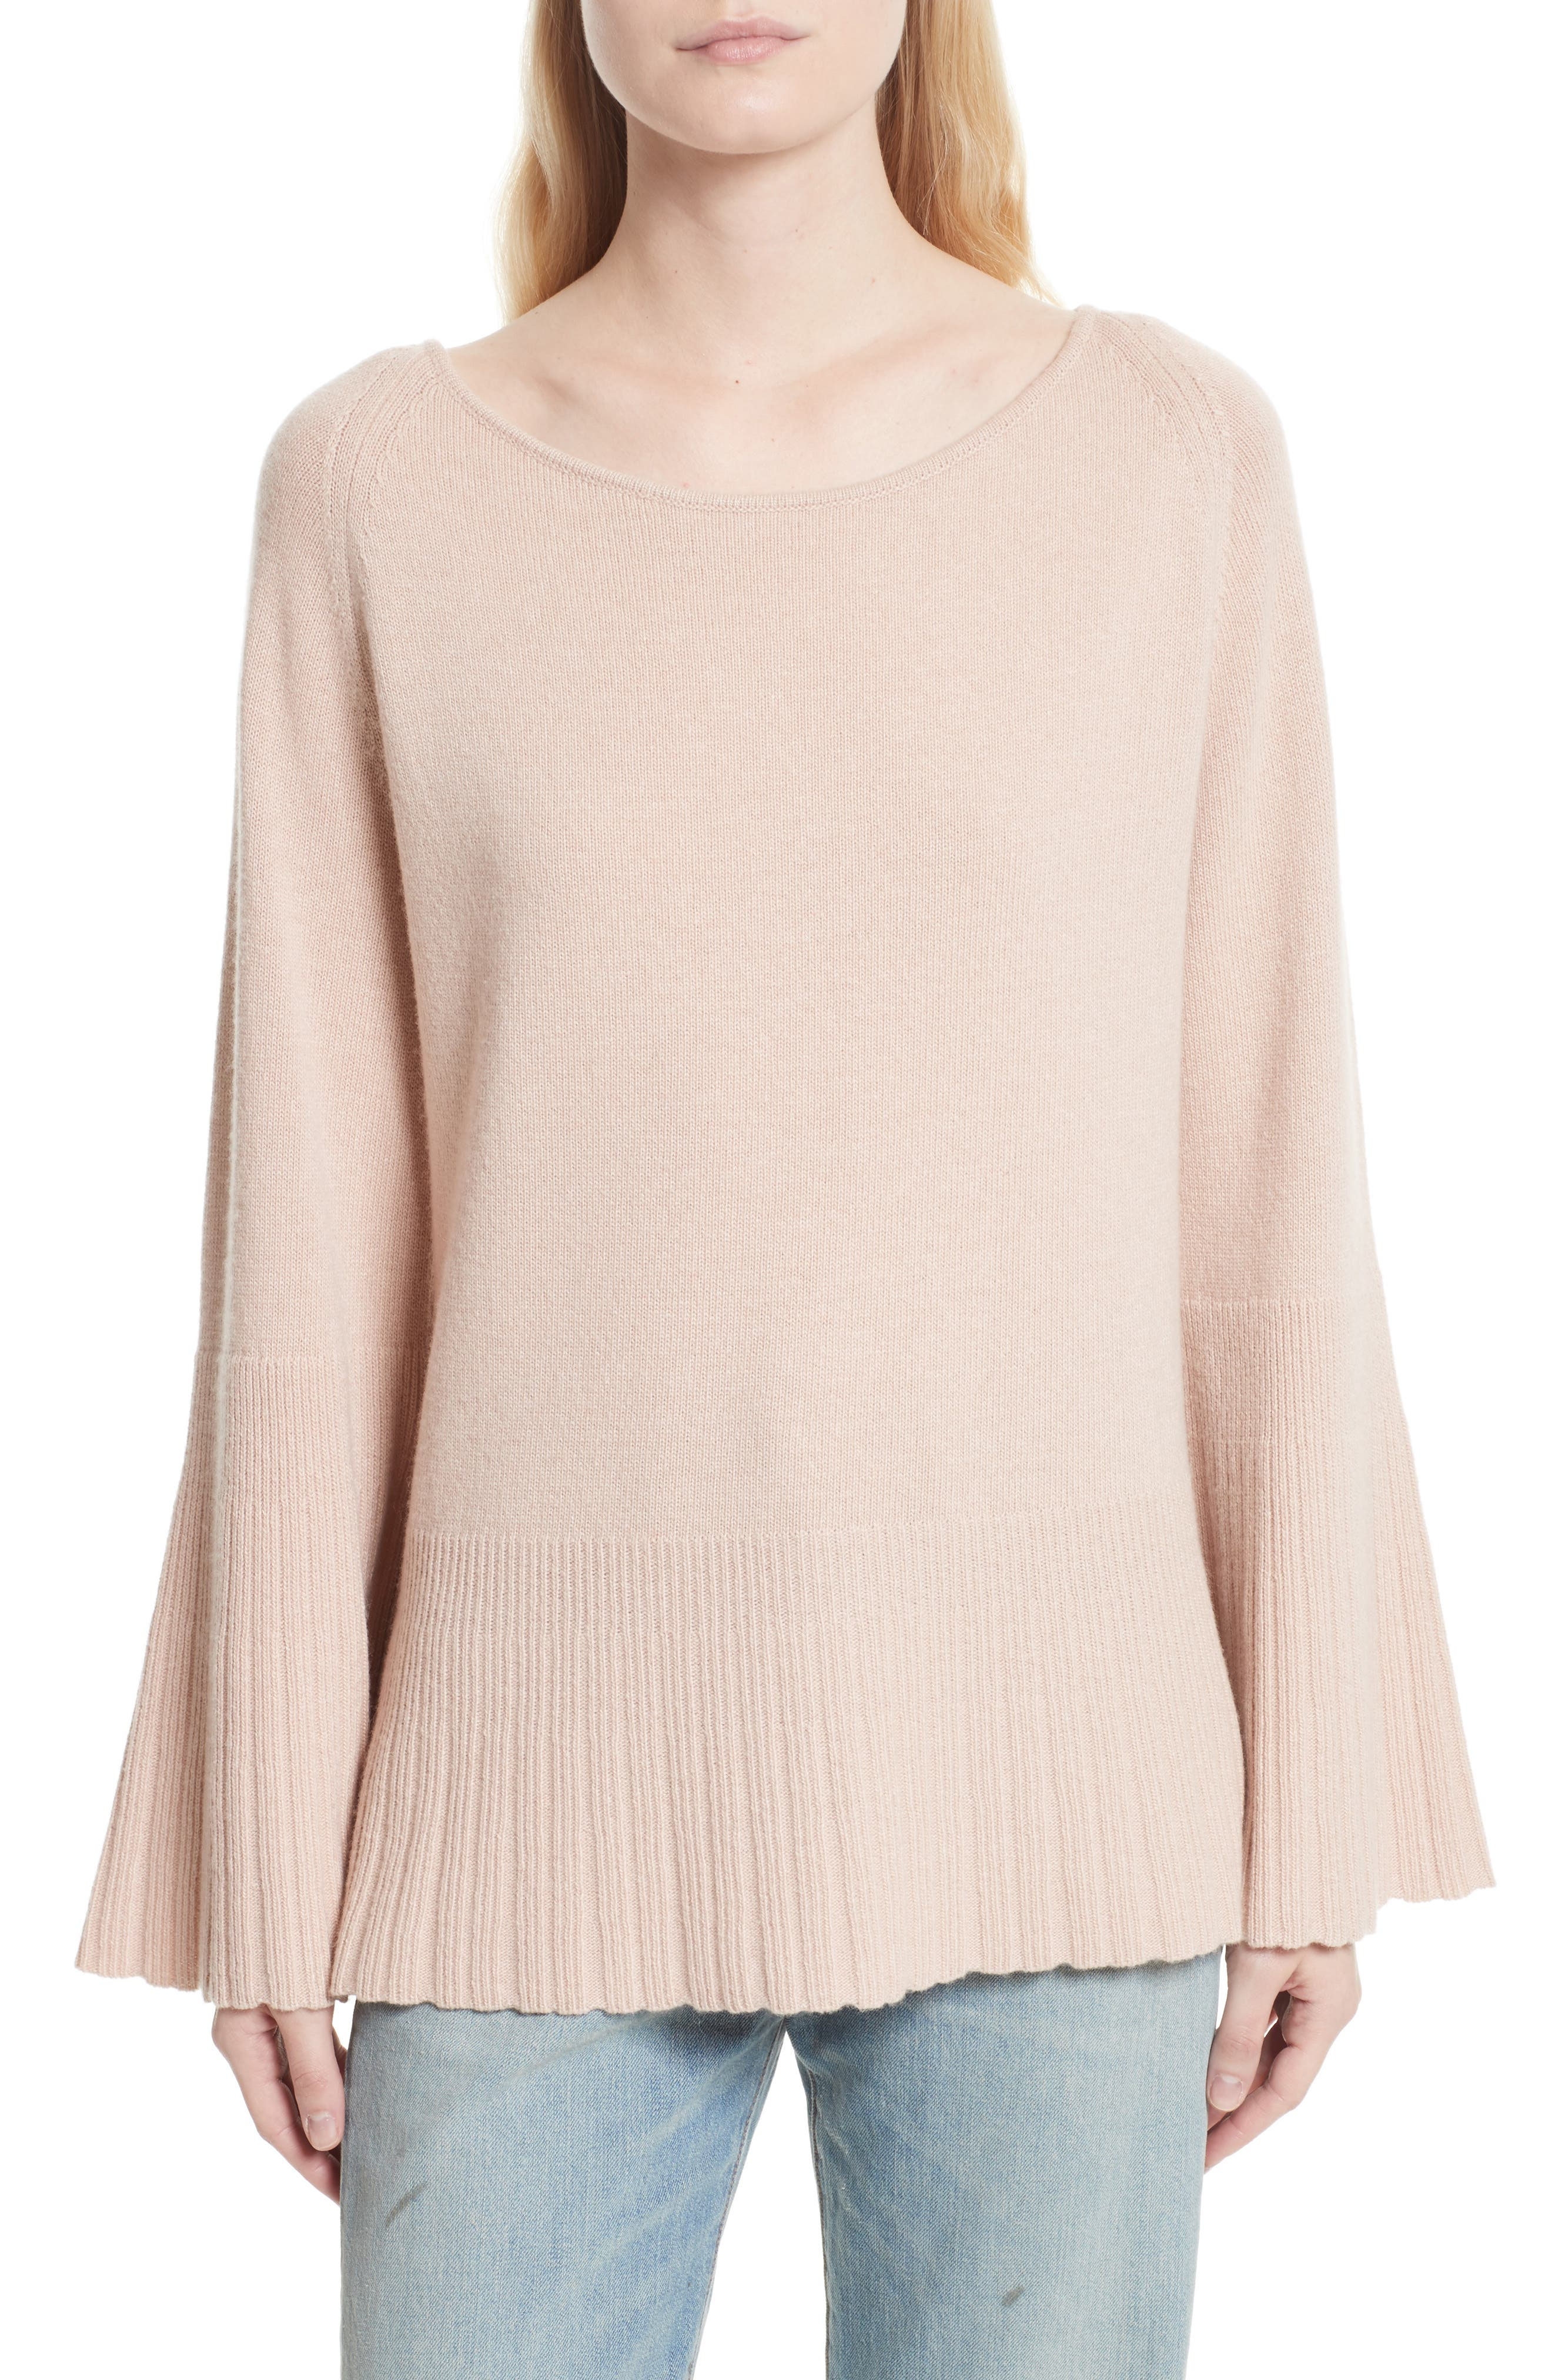 Clarette Bell Sleeve Sweater,                         Main,                         color, 650